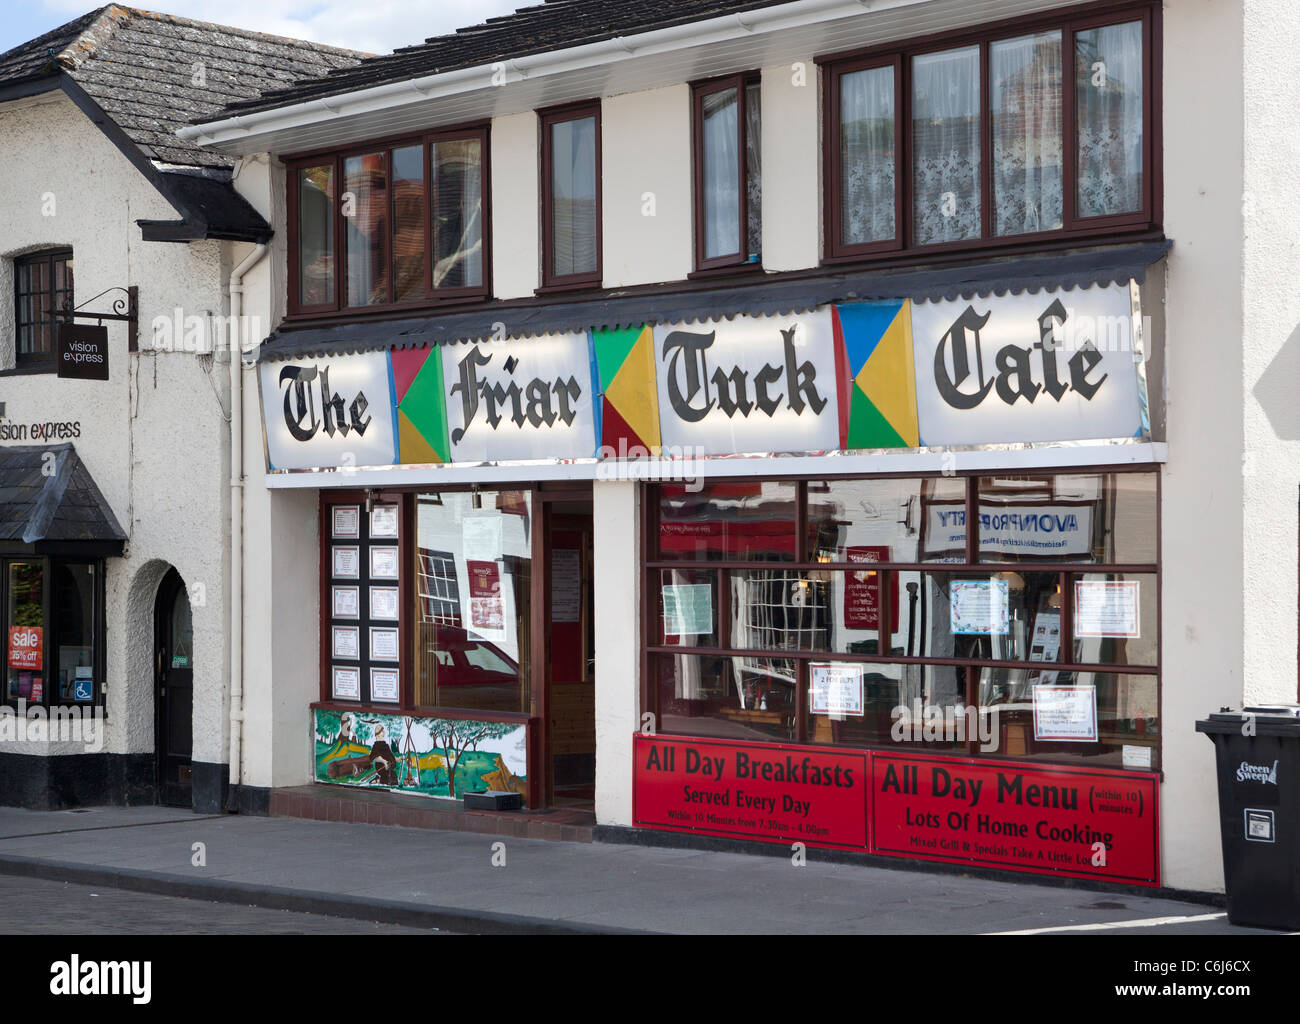 The Friar Tuck Cafe Amesbury Wiltshire - Stock Image